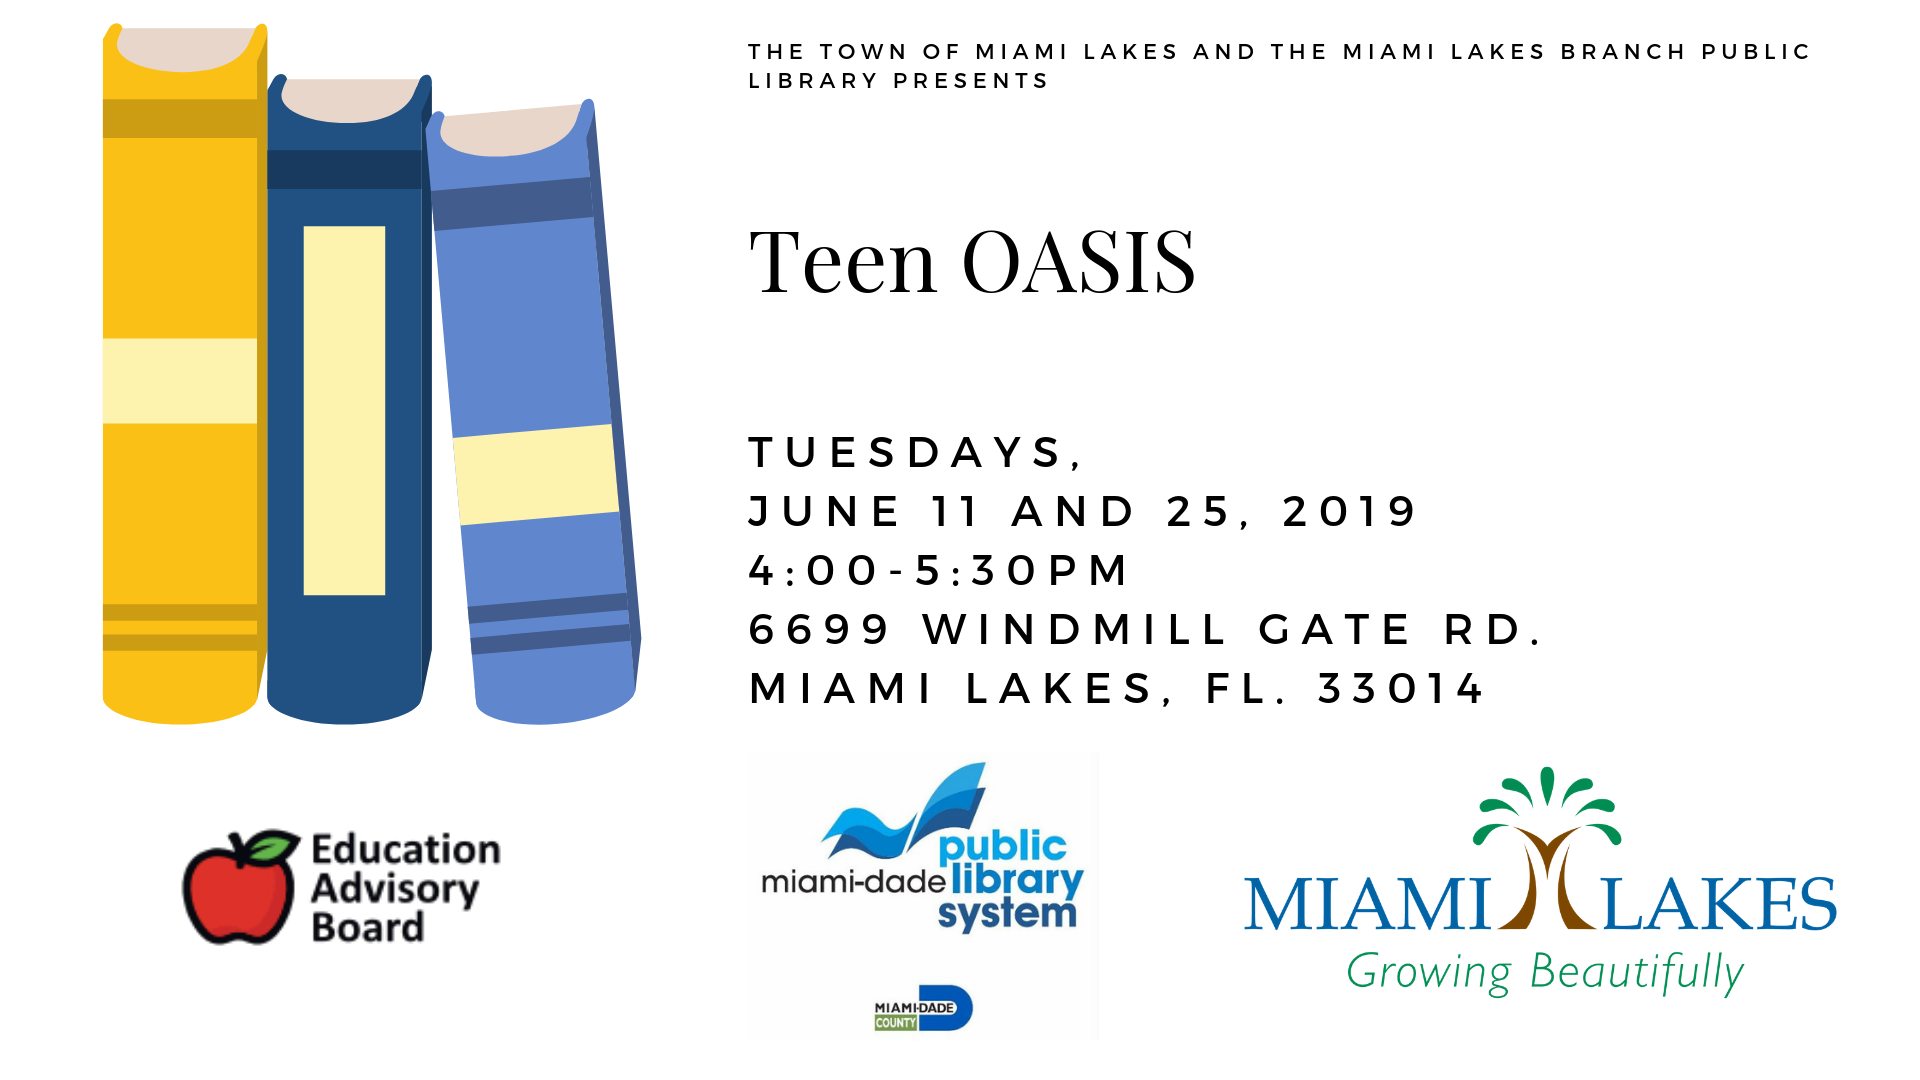 EAB Library Events Teen OASIS